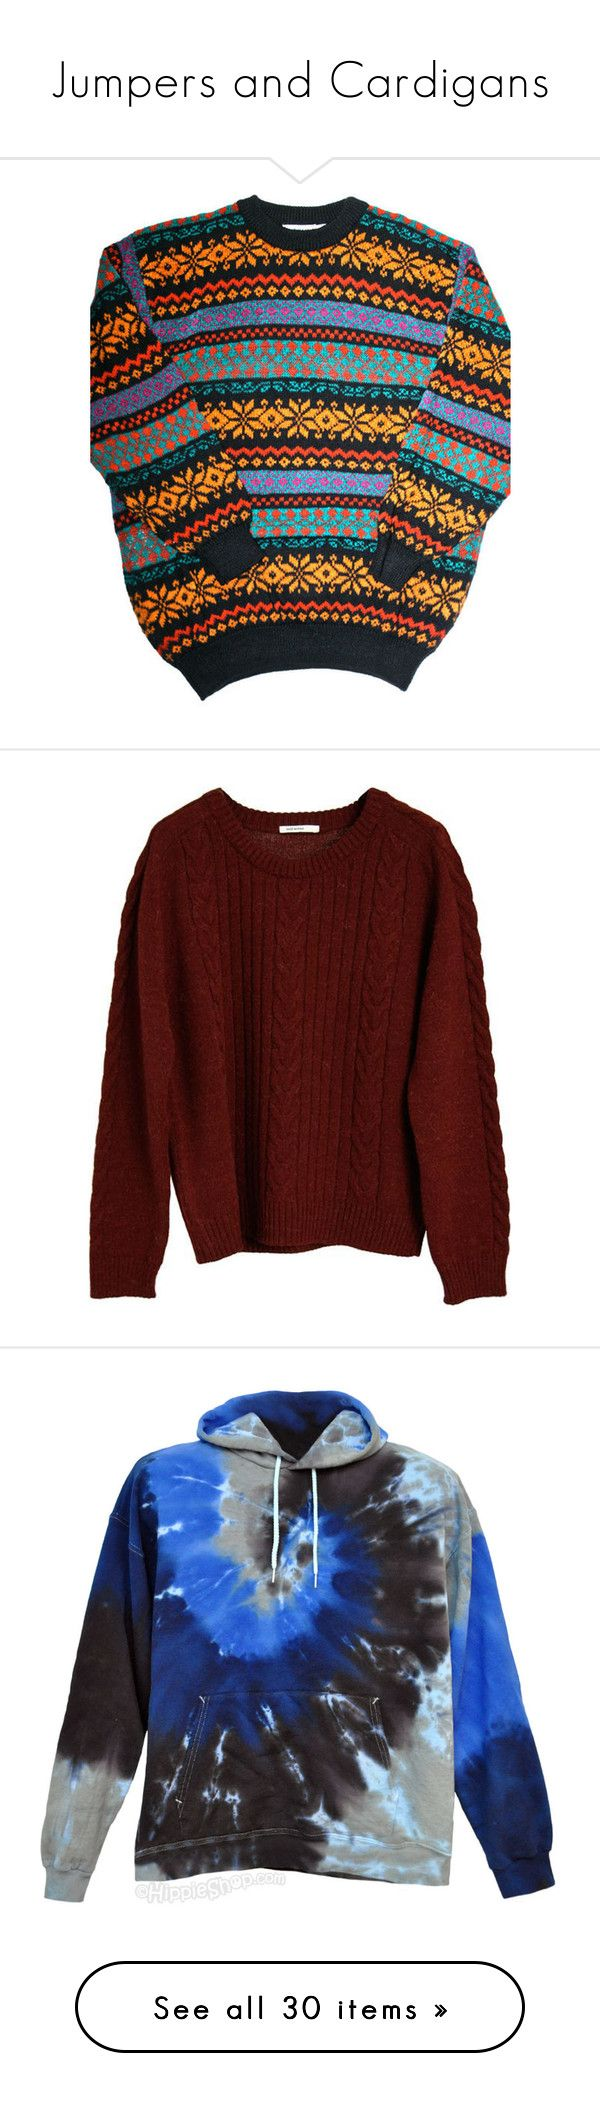 """""""Jumpers and Cardigans"""" by theprion ❤ liked on Polyvore featuring tops, sweaters, shirts, jumpers, camo top, camouflage jumper, camoflauge shirt, camouflage shirts, camo print shirt and red wool sweater"""